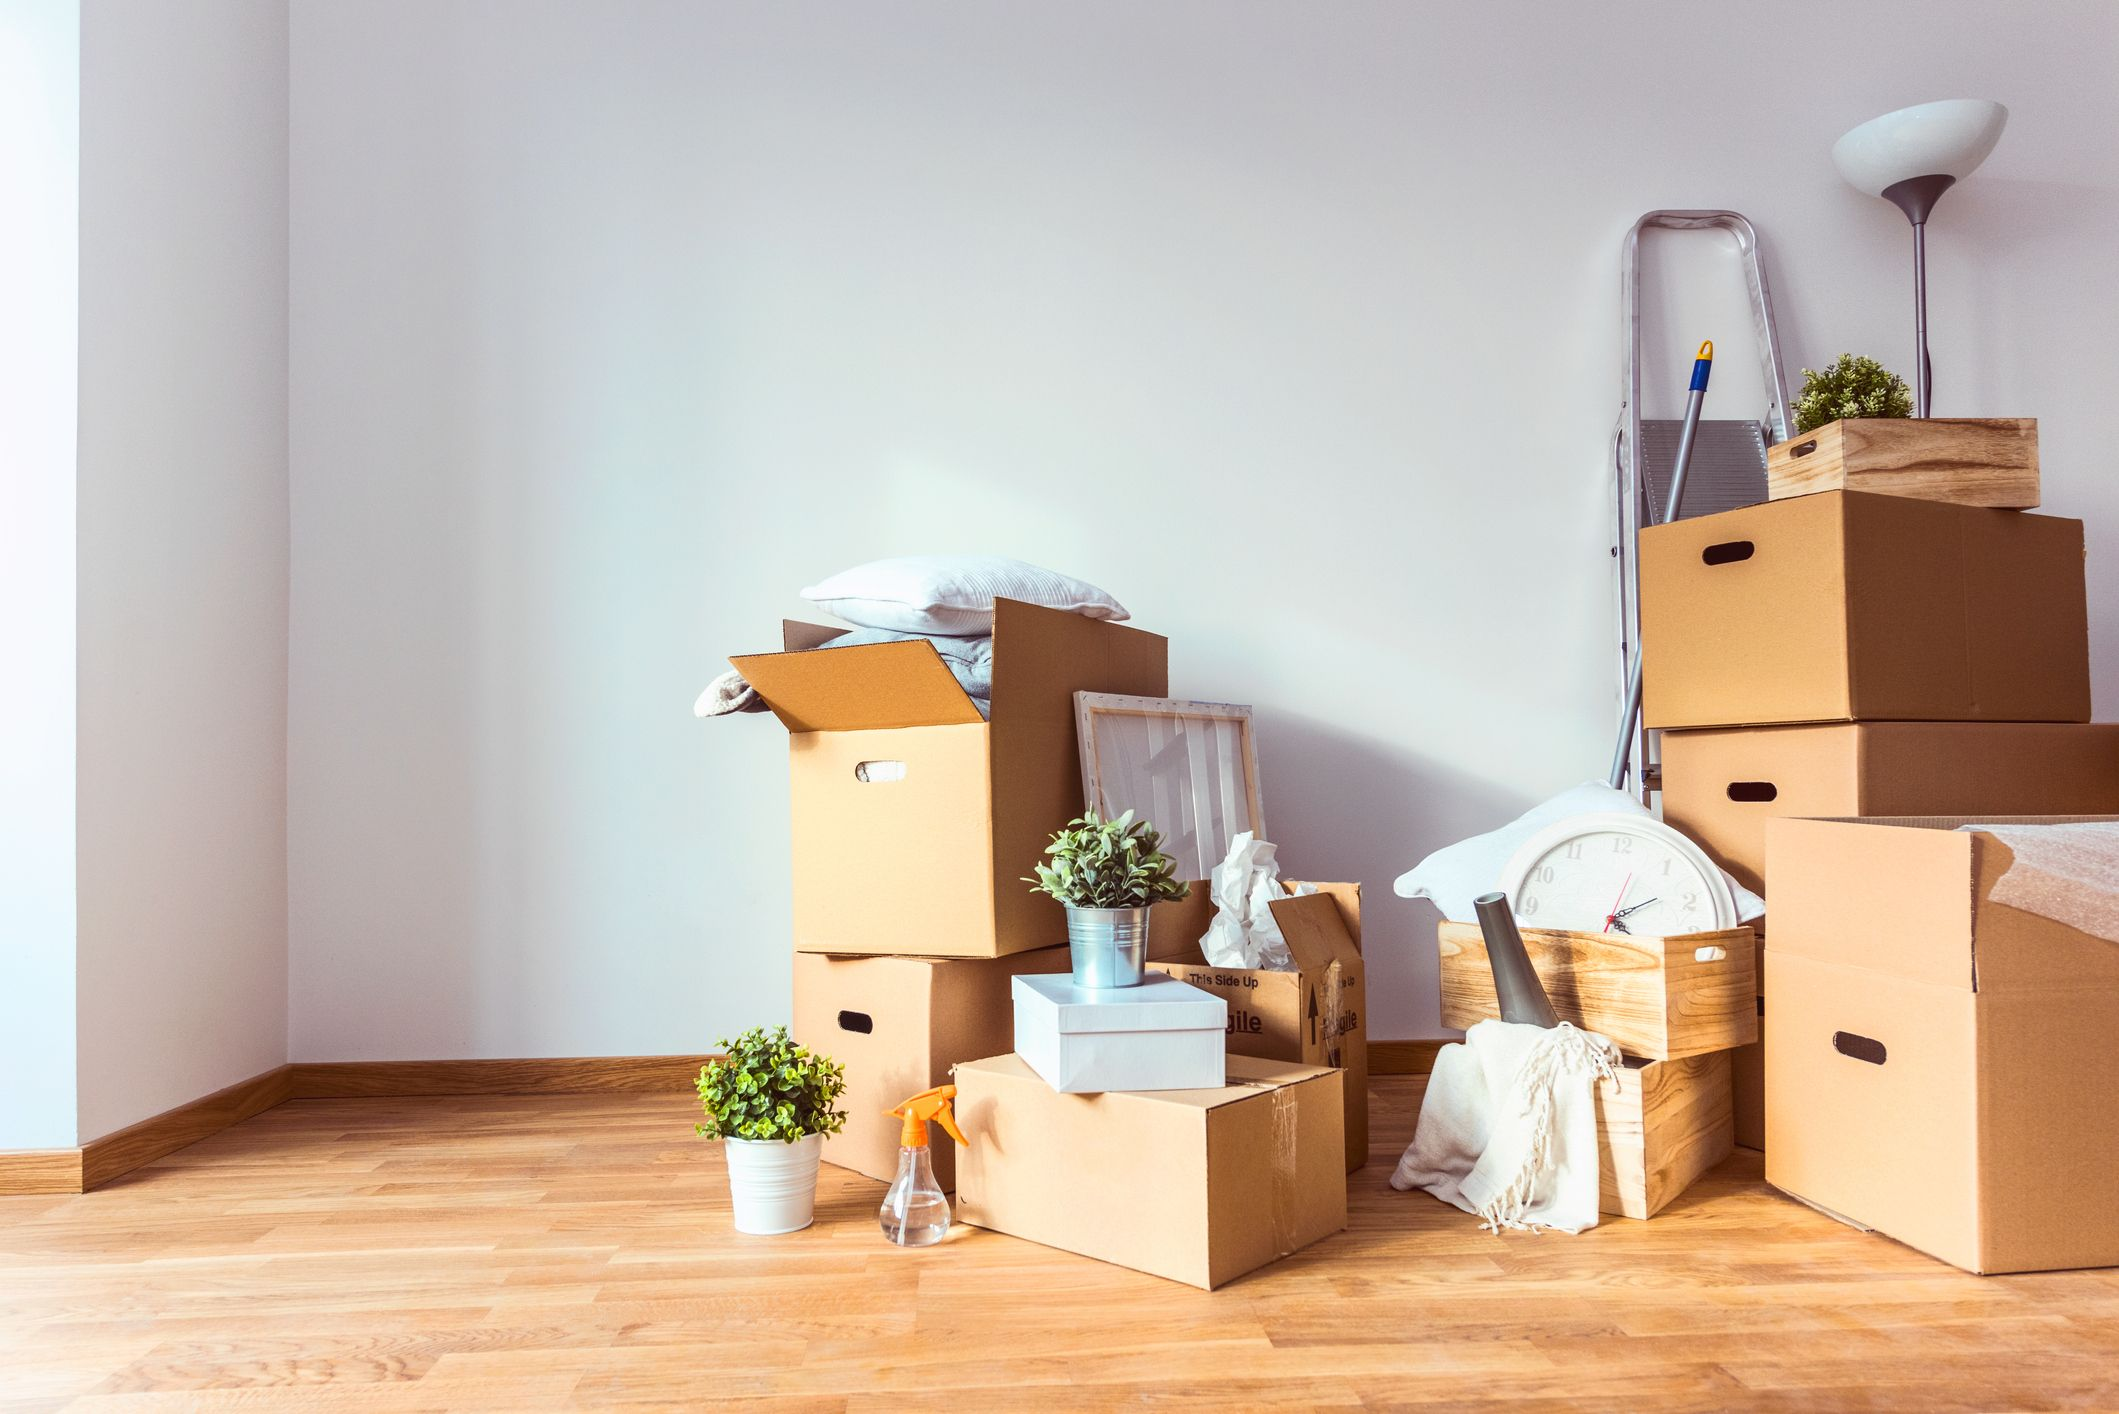 How To Pack For Moving House: From Packing Boxes To Valuables